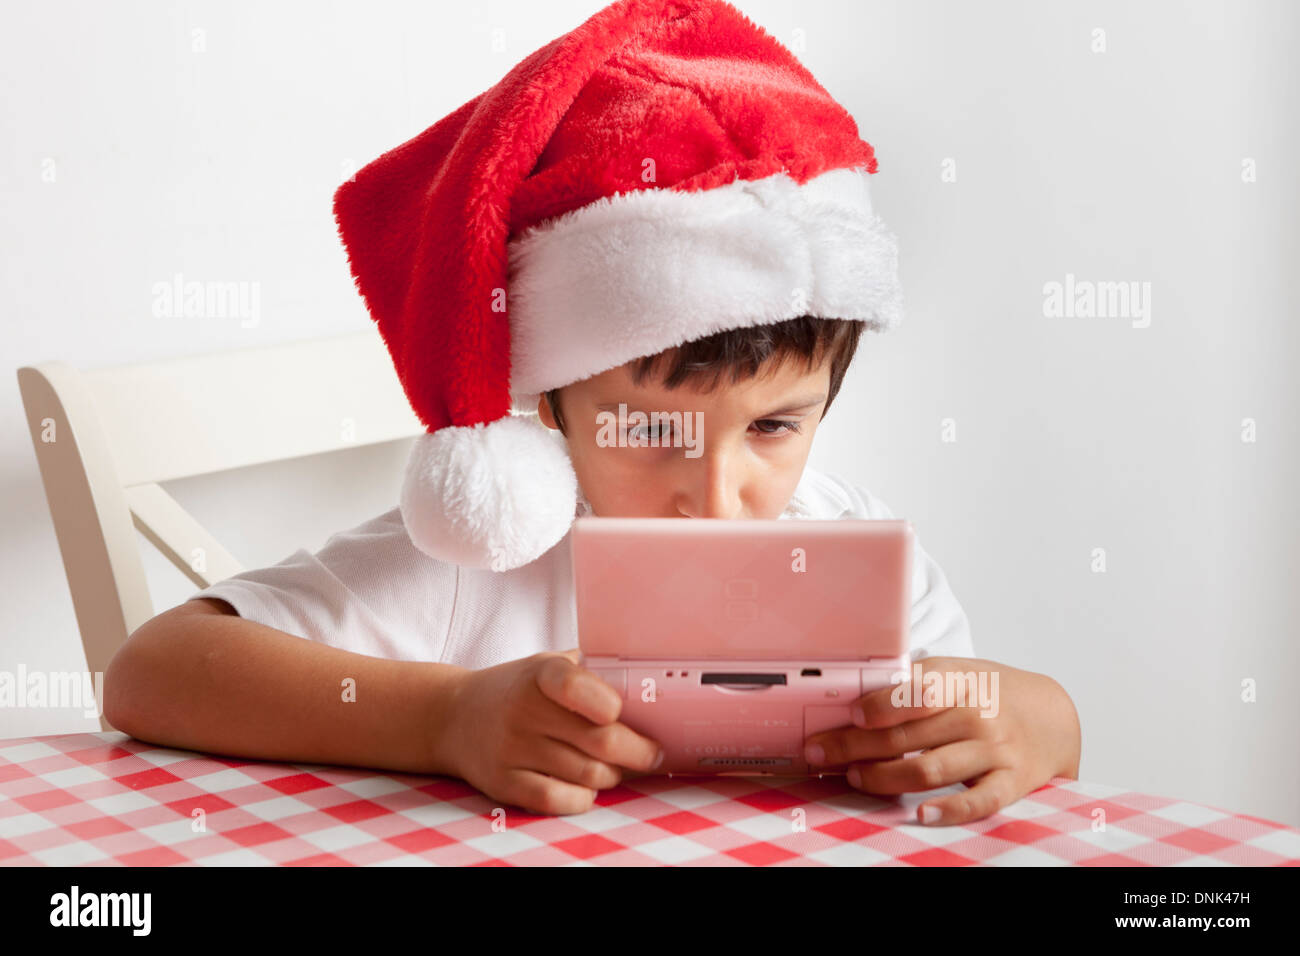 Boy in Santa's hat joue sur Nintendo DS Photo Stock